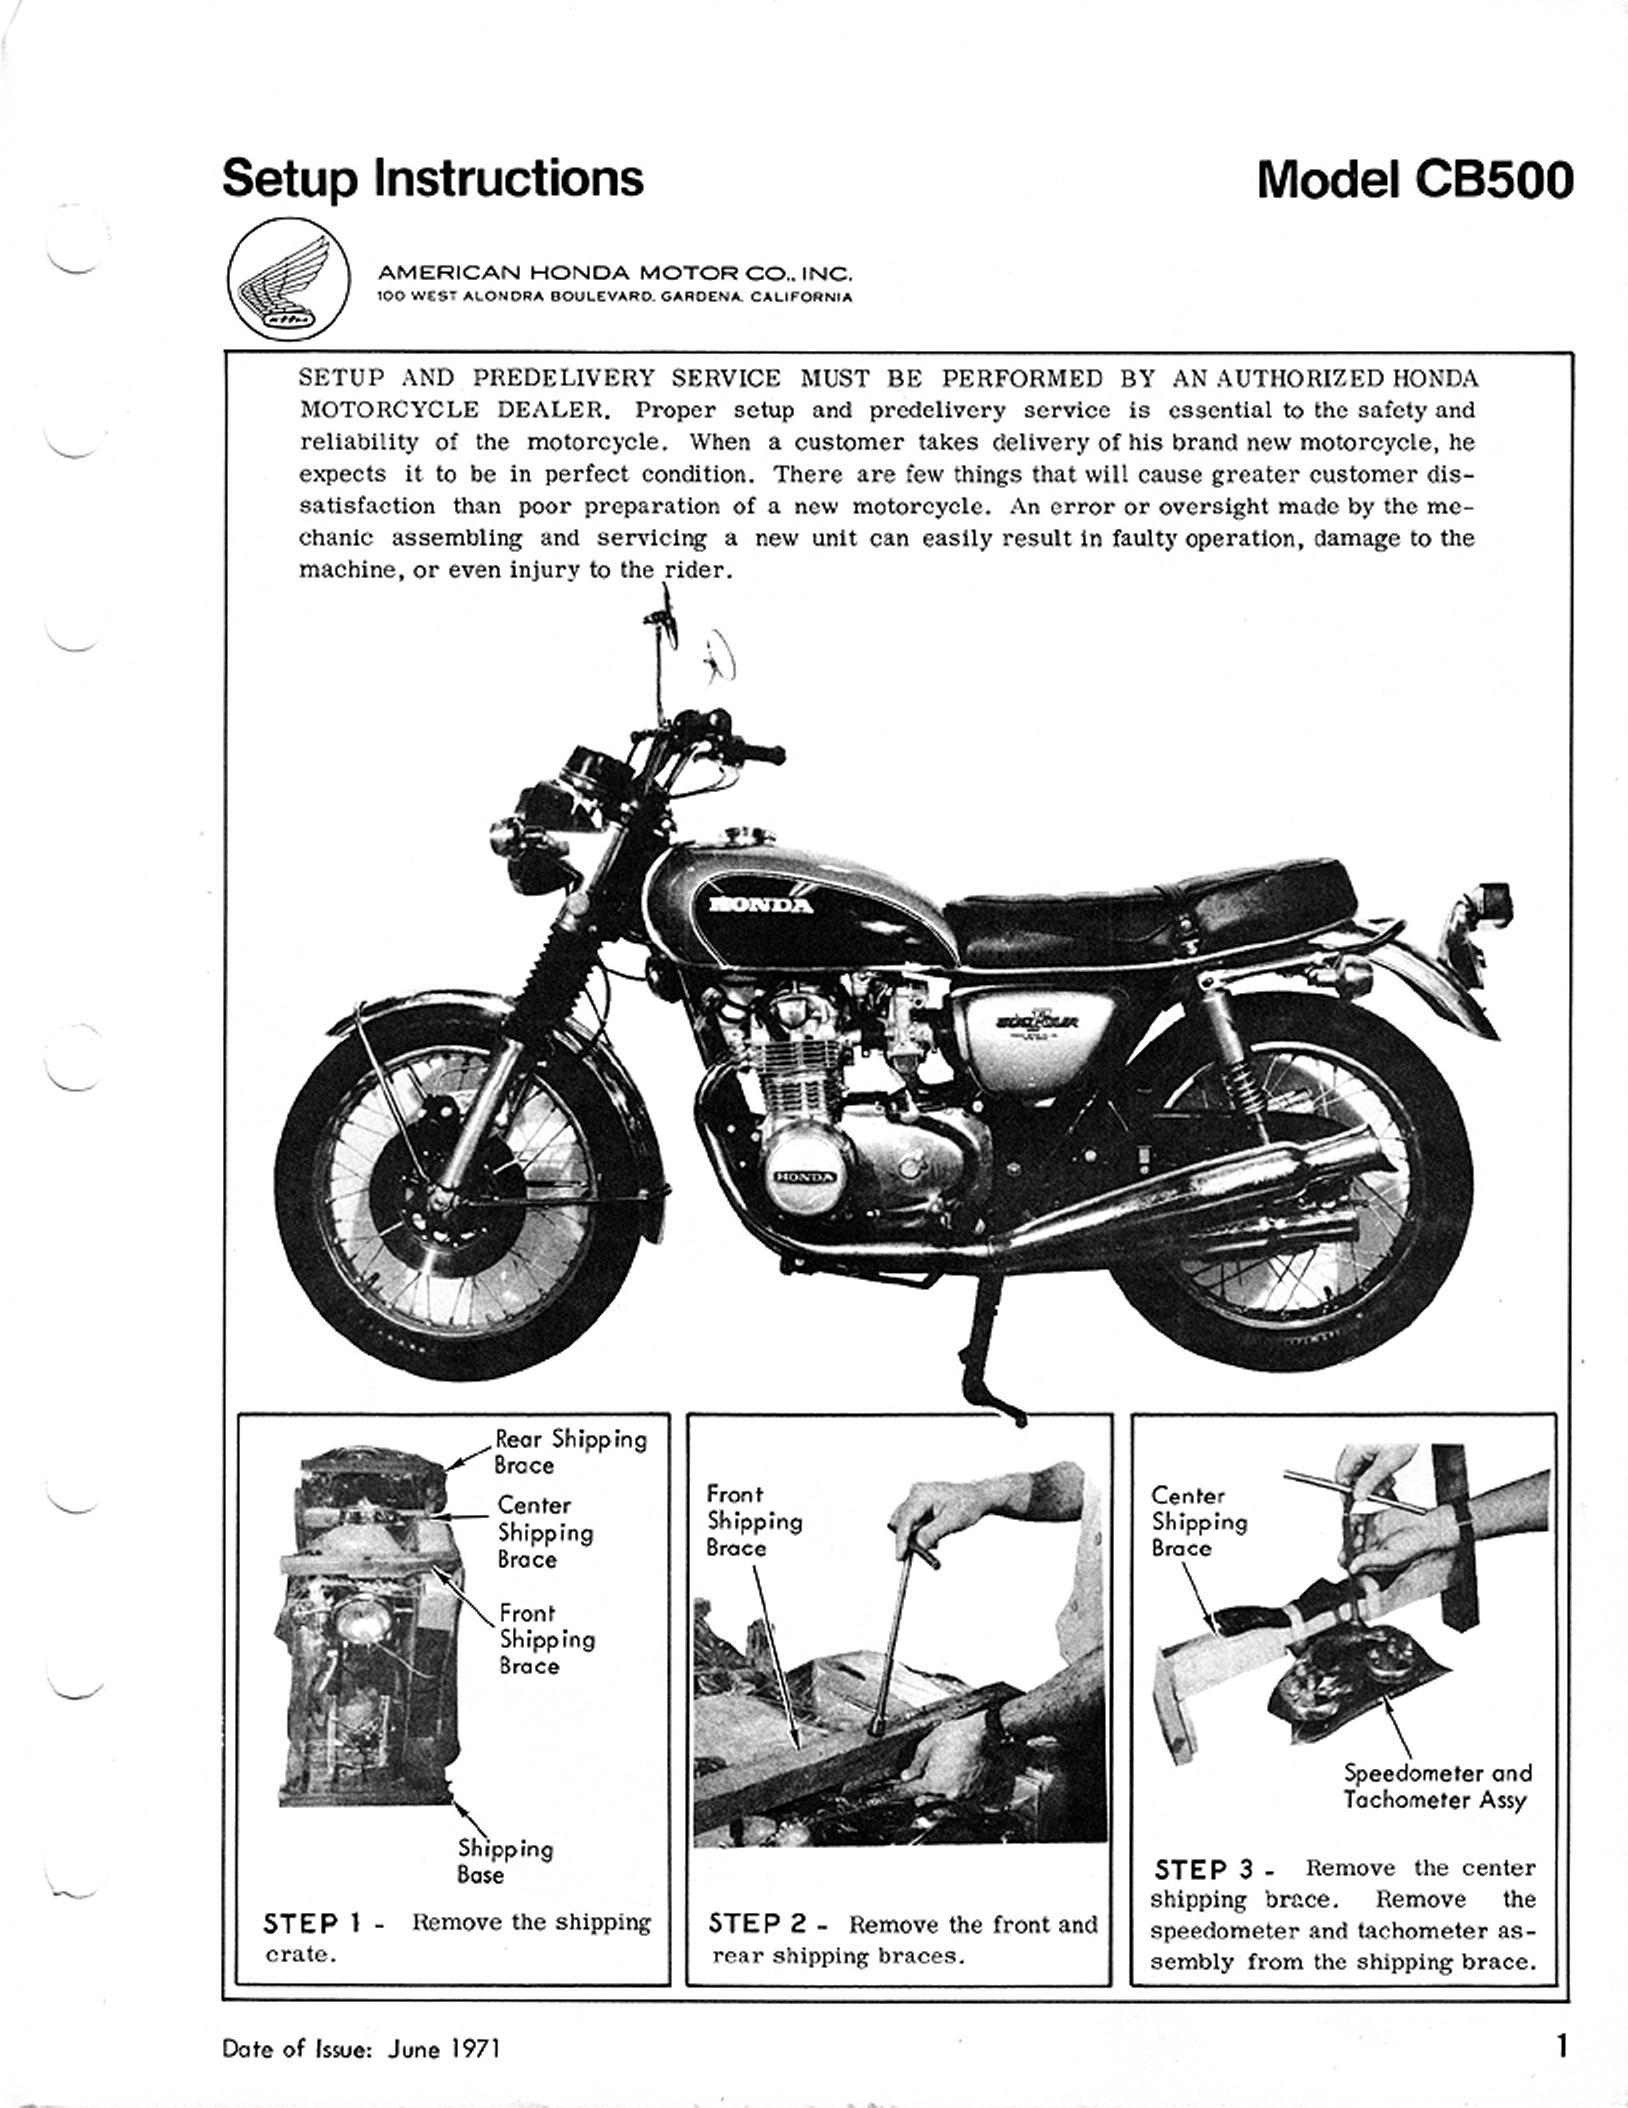 Setup Manual for Honda CB500 (1971)